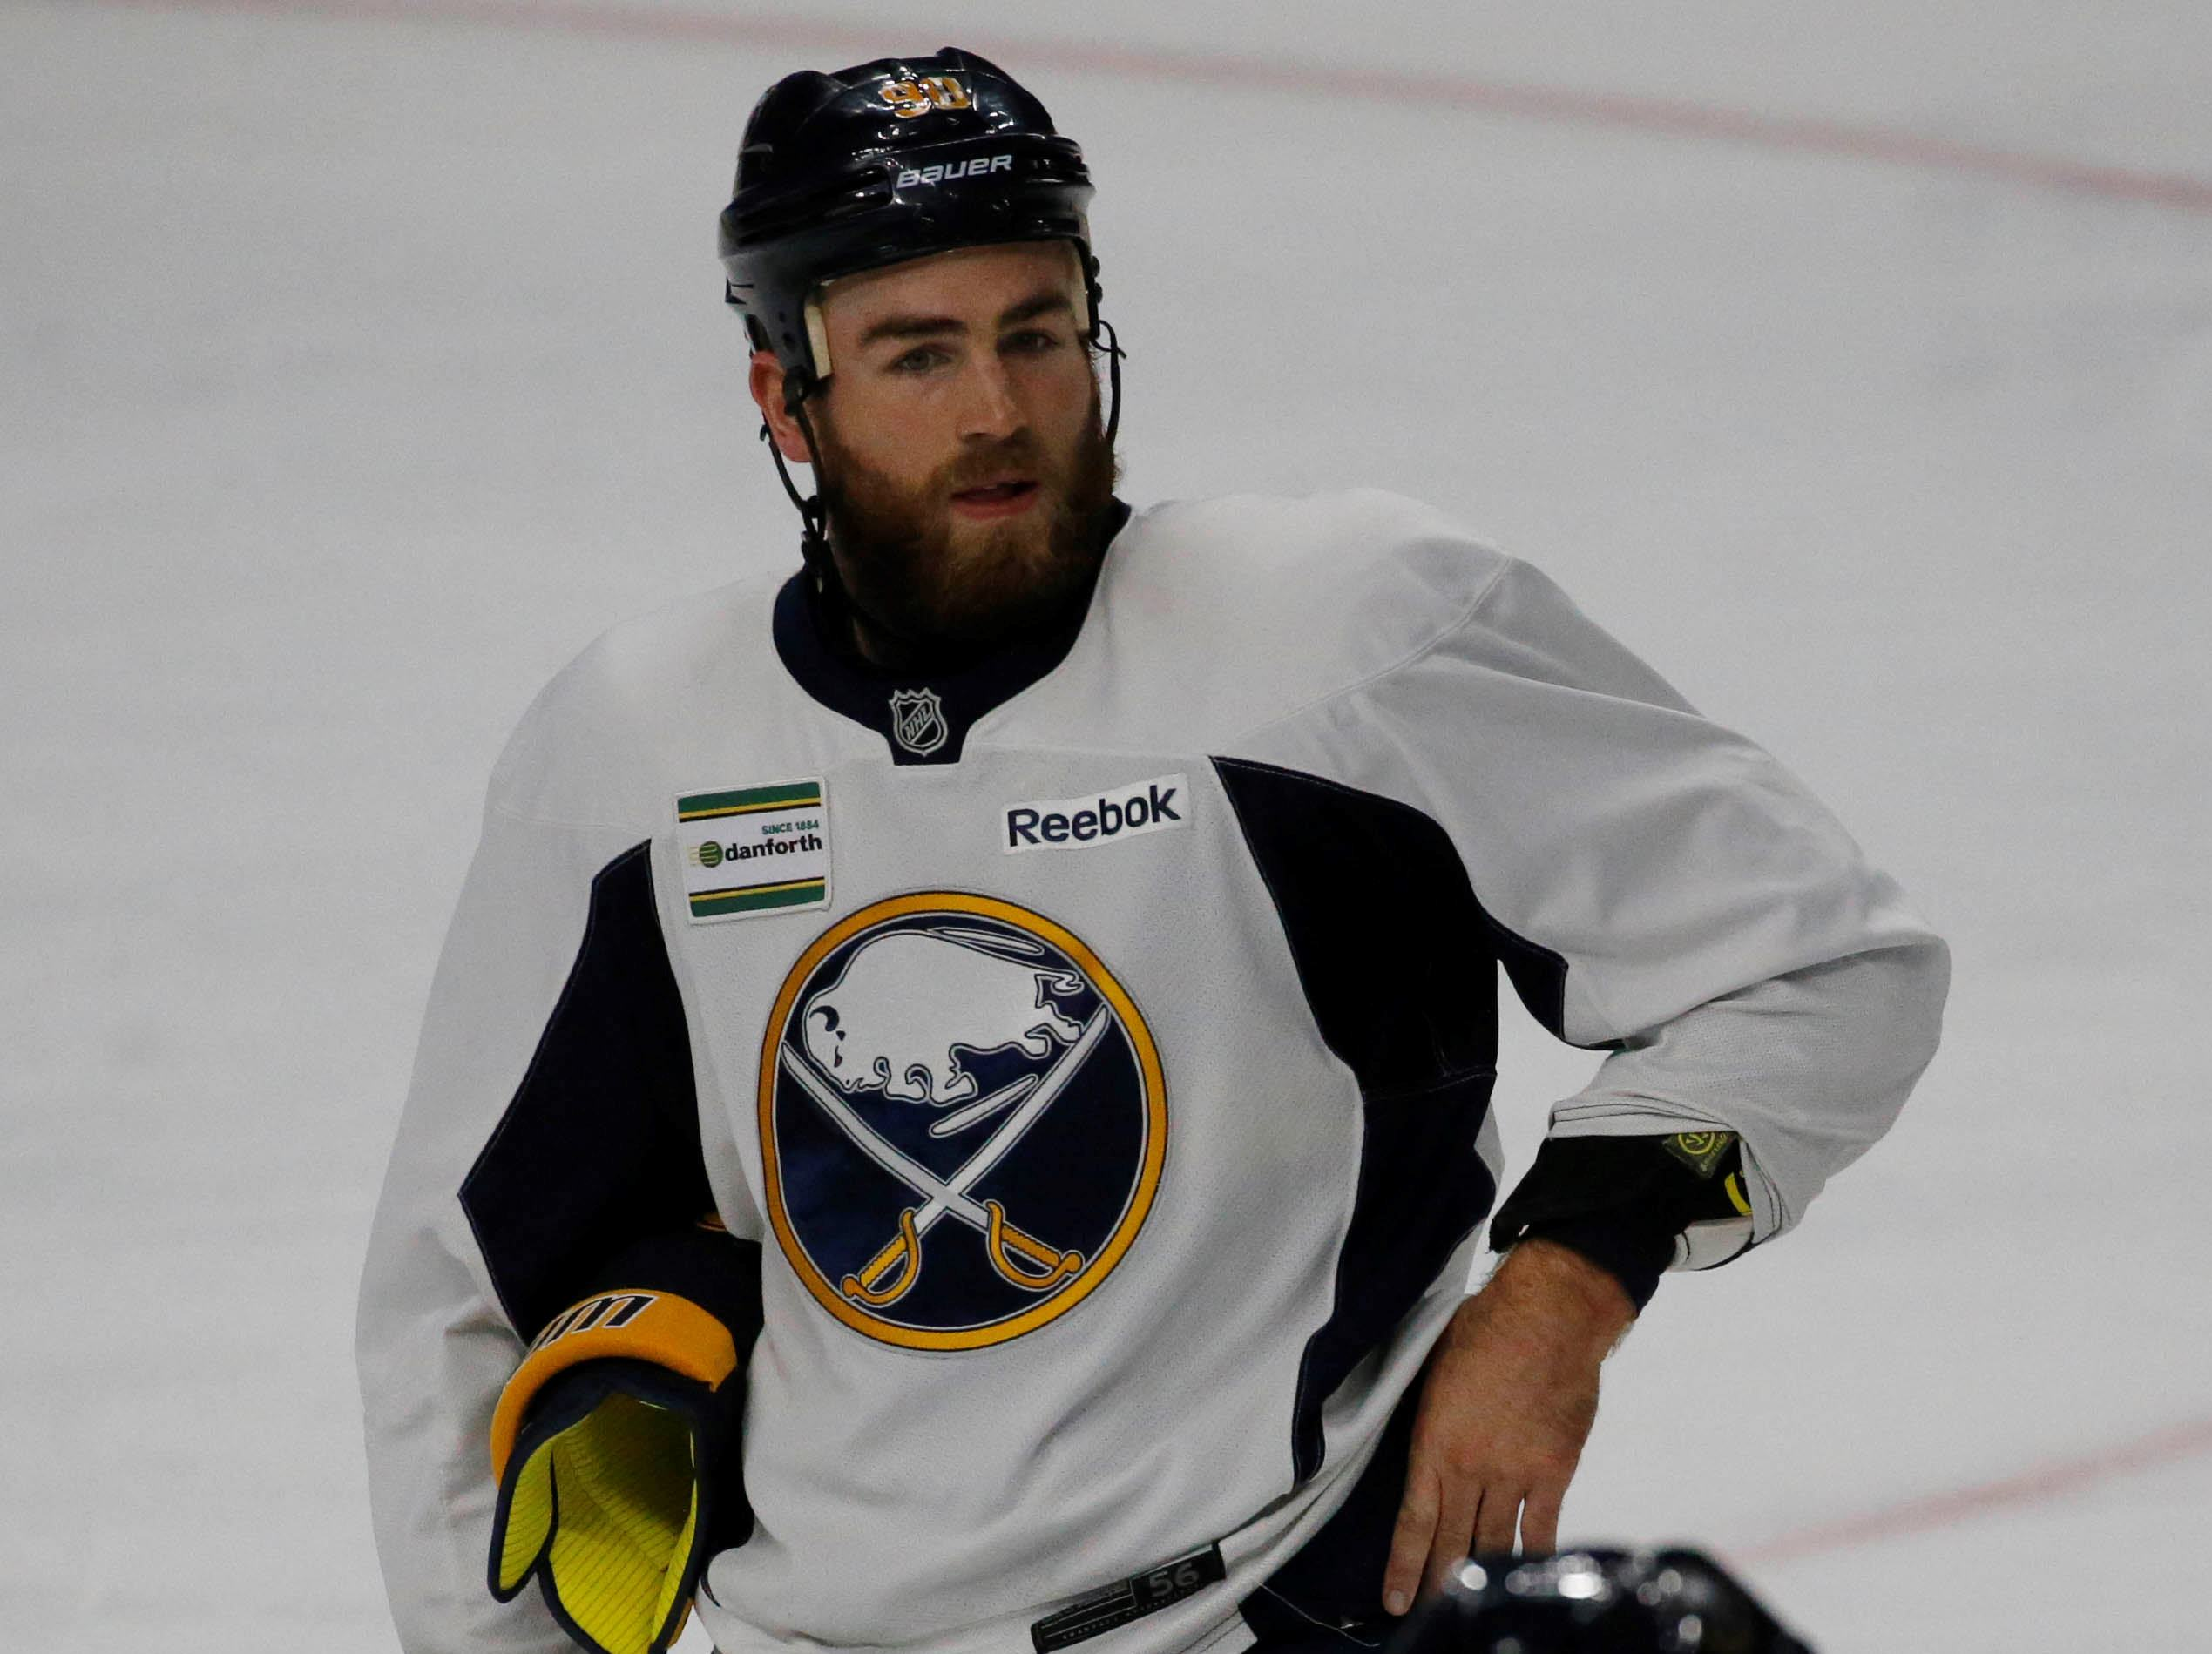 Buffalo Sabres forward Ryan O'Reilly skates during practice Thursday morning at Key Bank Center. (Derek Gee/Buffalo News)